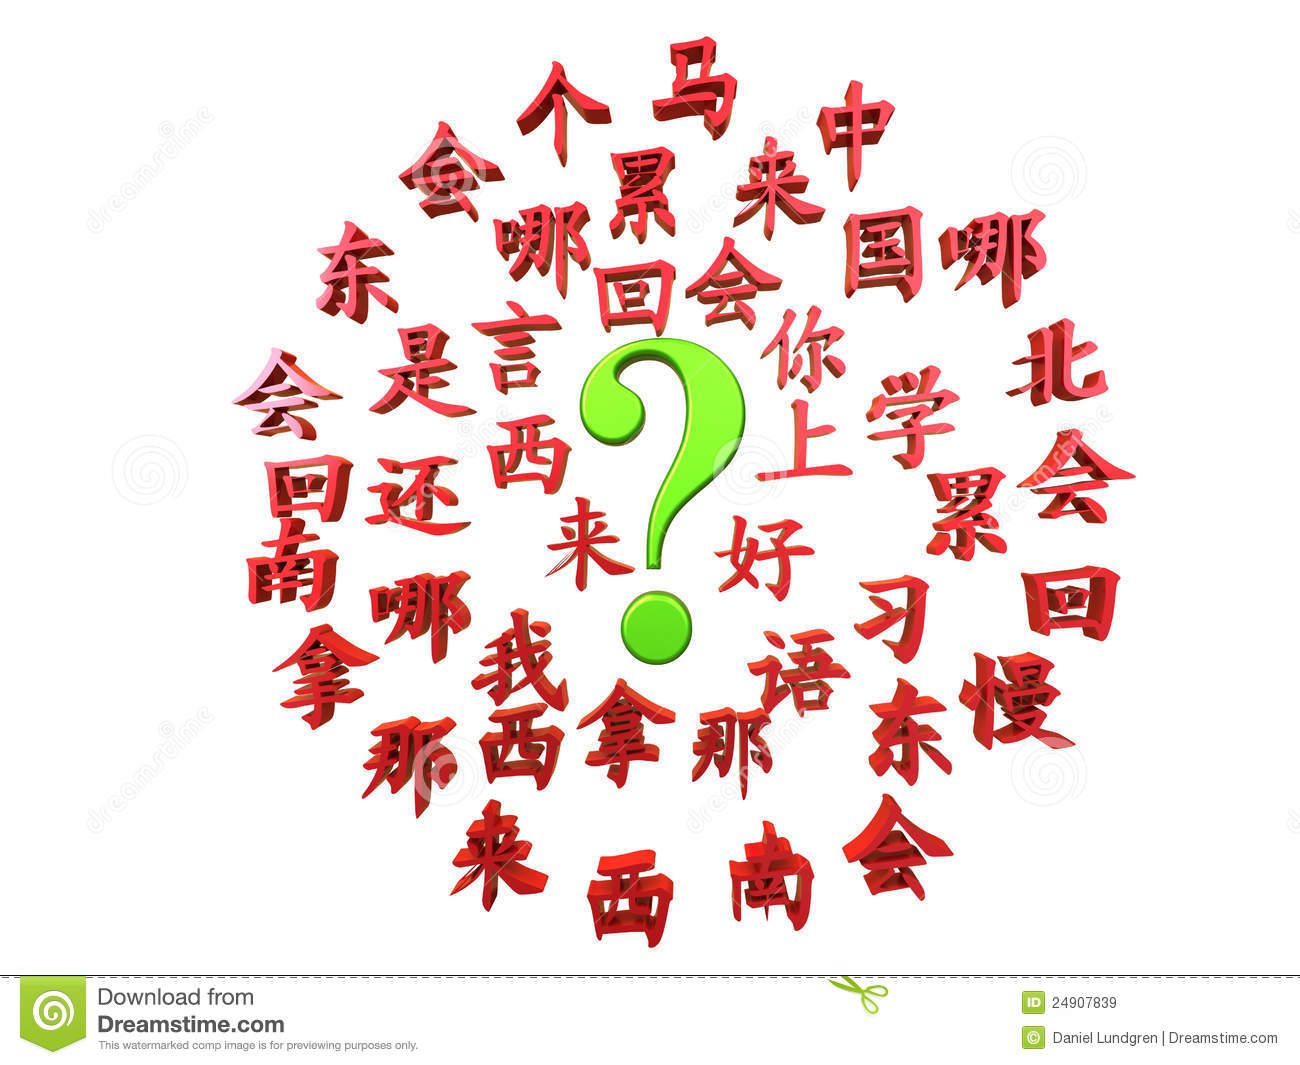 Learn Chinese Online - Online Mandarin course with ... - busuu